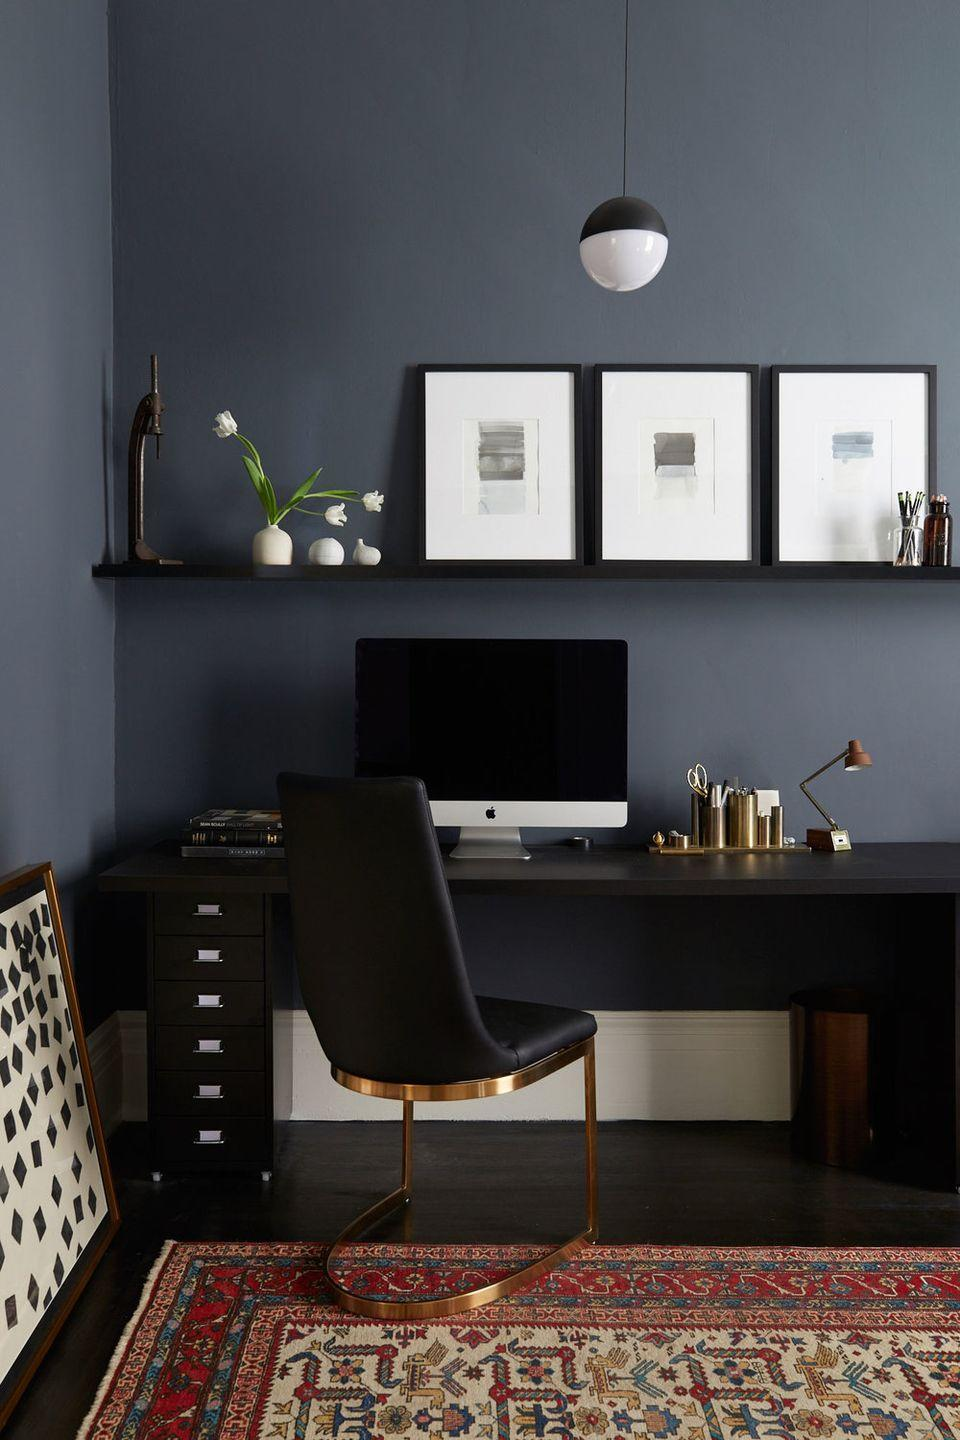 """<p>Is this not the sexiest office you've ever seen? Black furniture combined with brass accents looks super sleek. Opt for a gray-black for the walls, so it doesn't feel too dark. </p><p>Photo by <a href=""""http://www.nicolefranzen.com/interiors/"""" rel=""""nofollow noopener"""" target=""""_blank"""" data-ylk=""""slk:Nicole Franzen"""" class=""""link rapid-noclick-resp"""">Nicole Franzen</a>.</p>"""